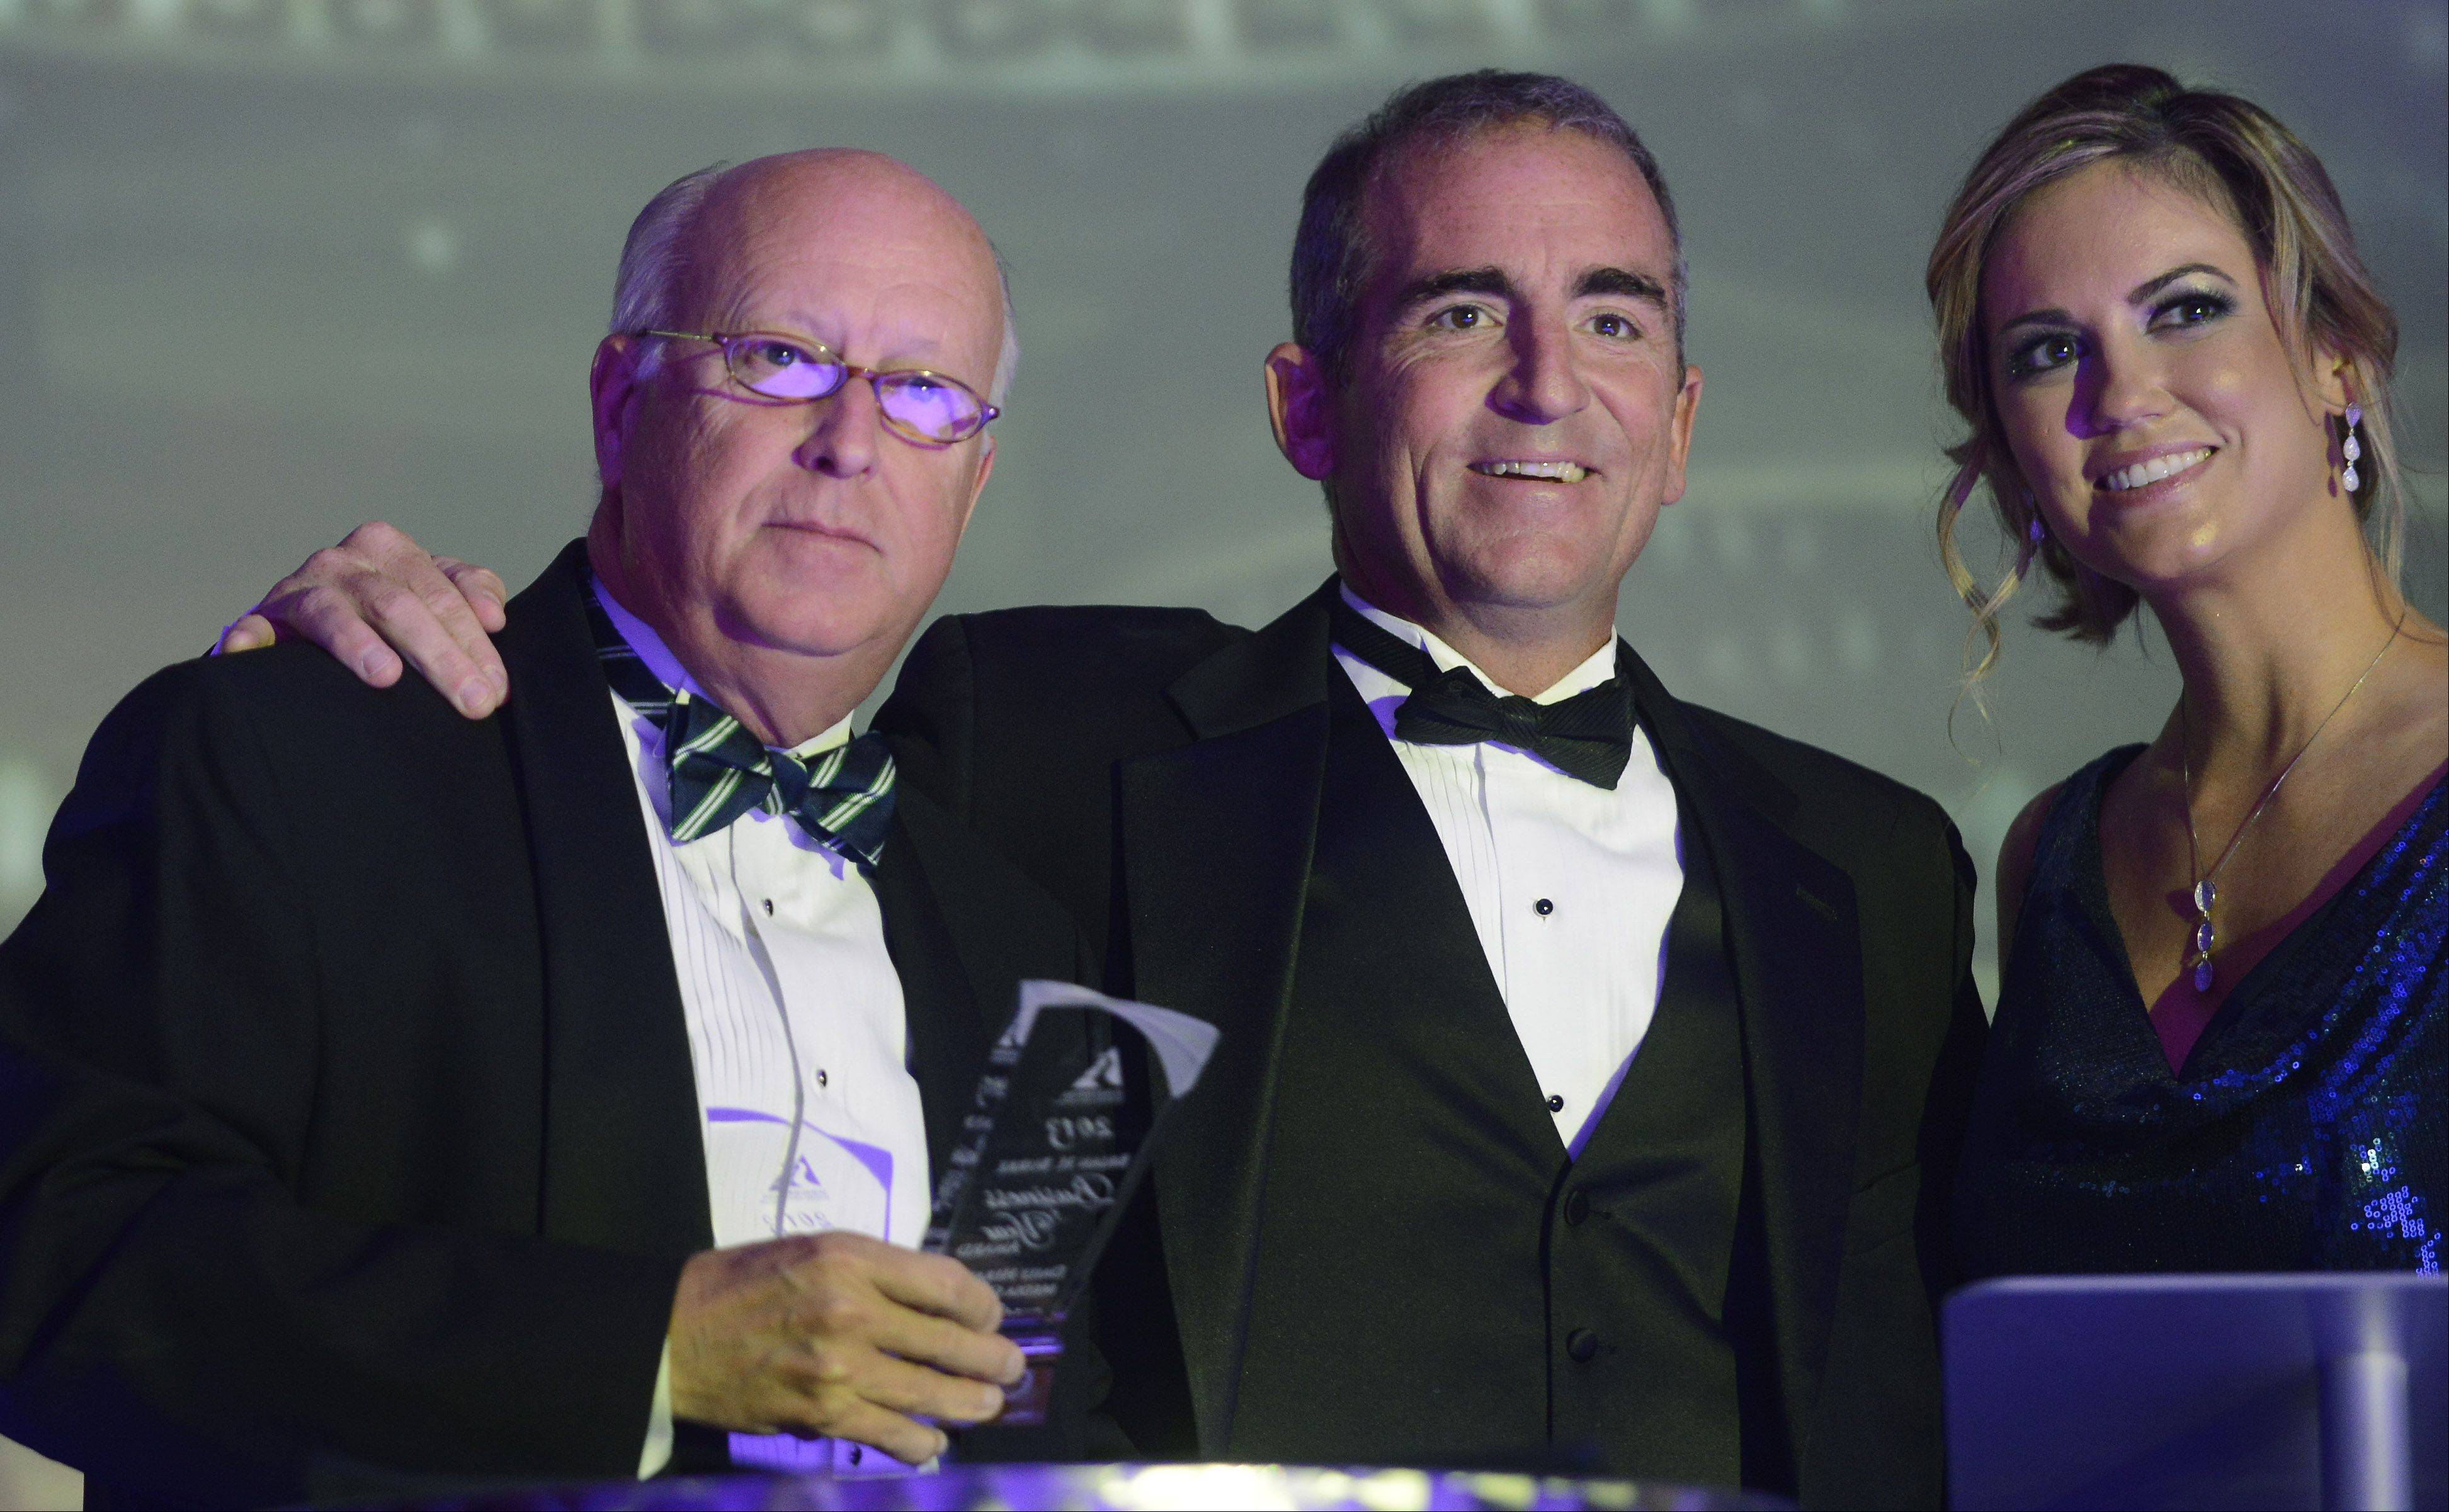 JOE LEWNARD/jlewnard@dailyherald.comDouglas K. Ray, CEO and publisher of the Daily Herald Media Group, stands with Jim Burke of Links and Kaili Harding, president of the Schaumburg Business Association, as he accepts the Brian H. Burke Business of the Year Award during the Schaumburg Business Association Toast of Schaumburg event Saturday at the Renaissance Schaumburg Convention Center.